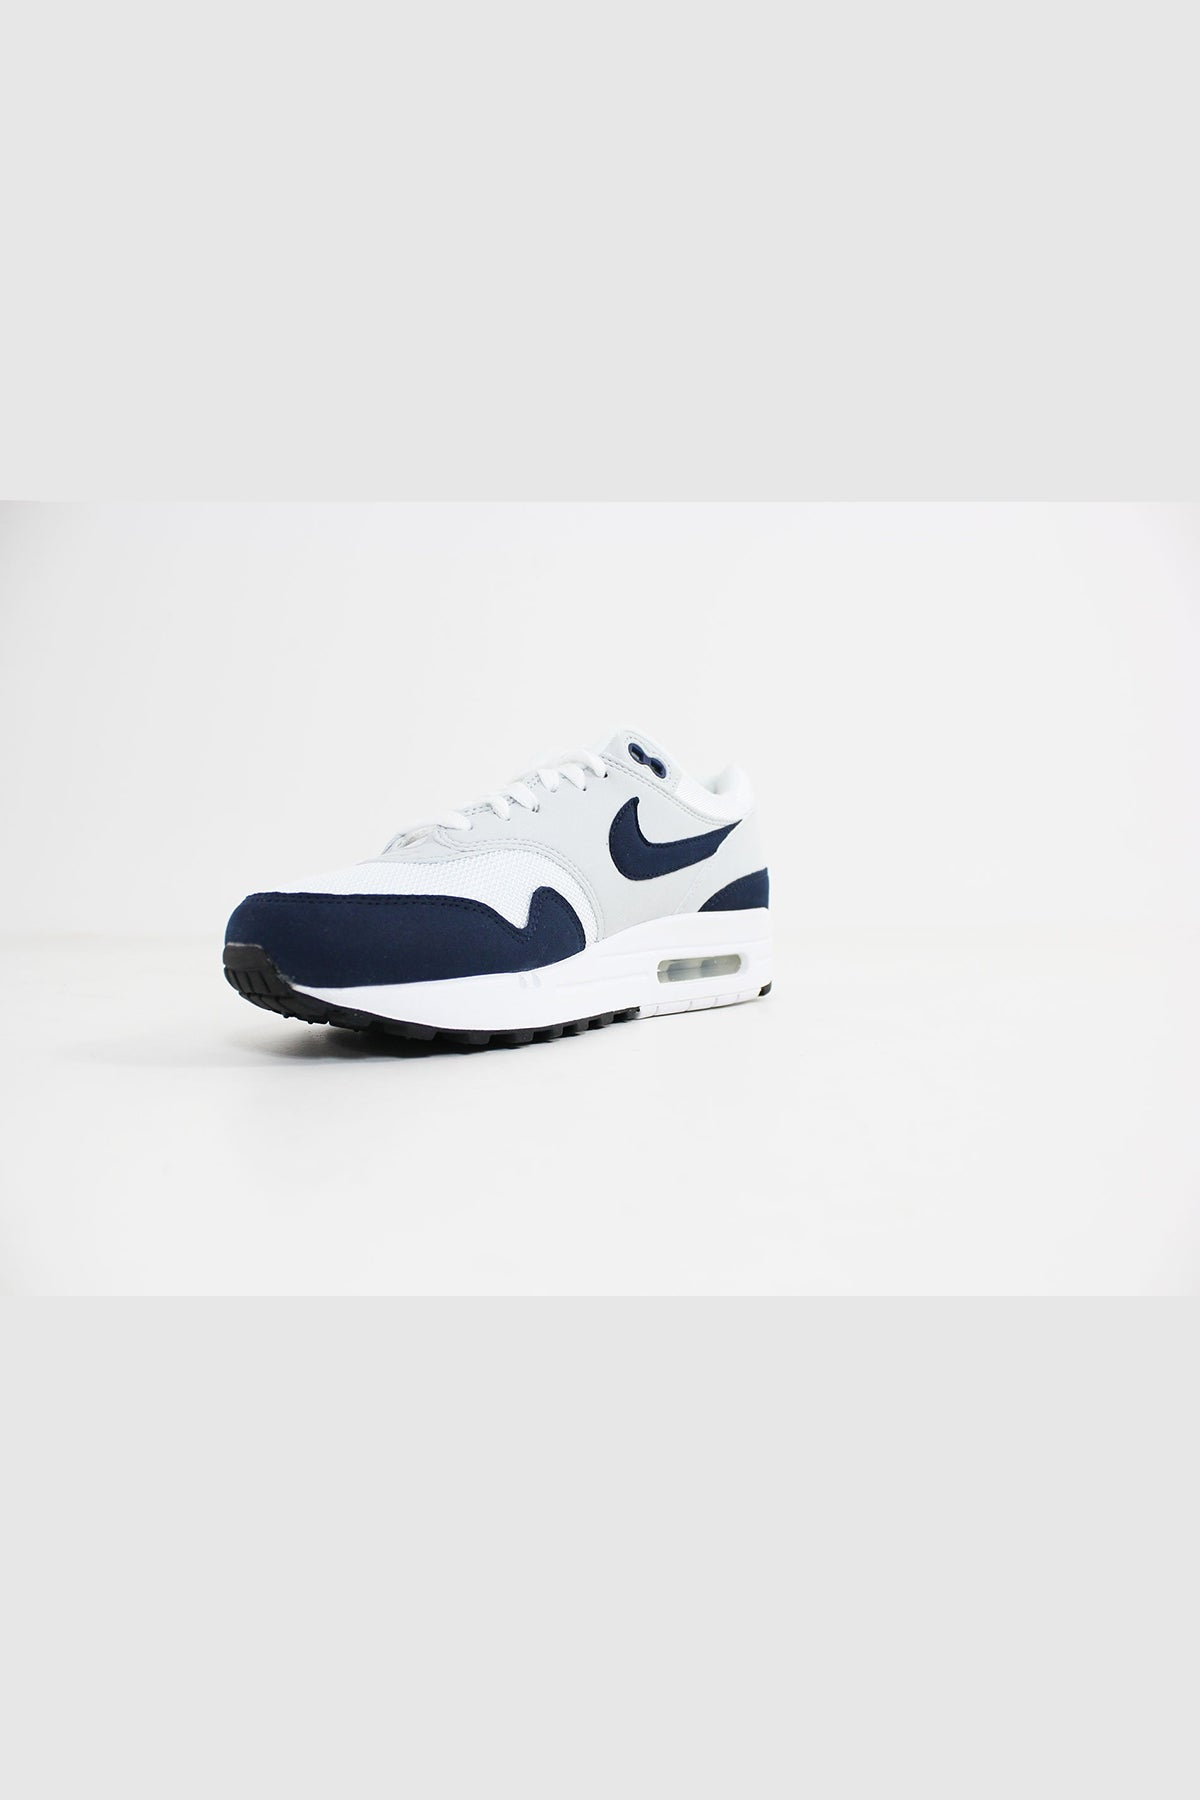 Nike - Air Max 1 Women (White/ Obsidian-Pure Platinum-Black) 319986-104